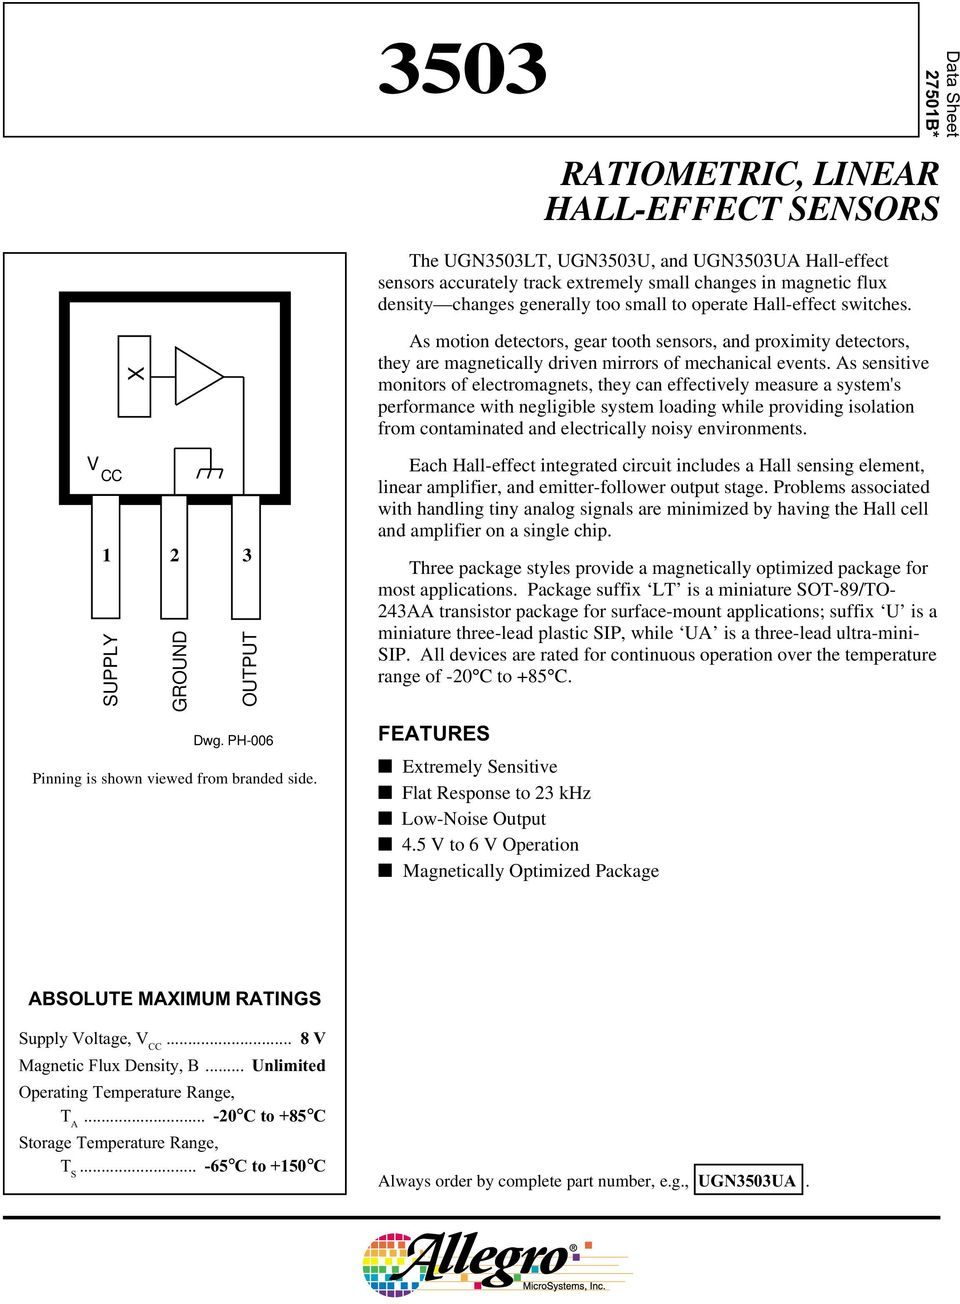 We Used The Ua Package Hall Effect Sensor For More Information Ratiometric Linear Sensors Pdf S Motion Detectors Gear Tooth And Proximity They Are Magnetically Driven